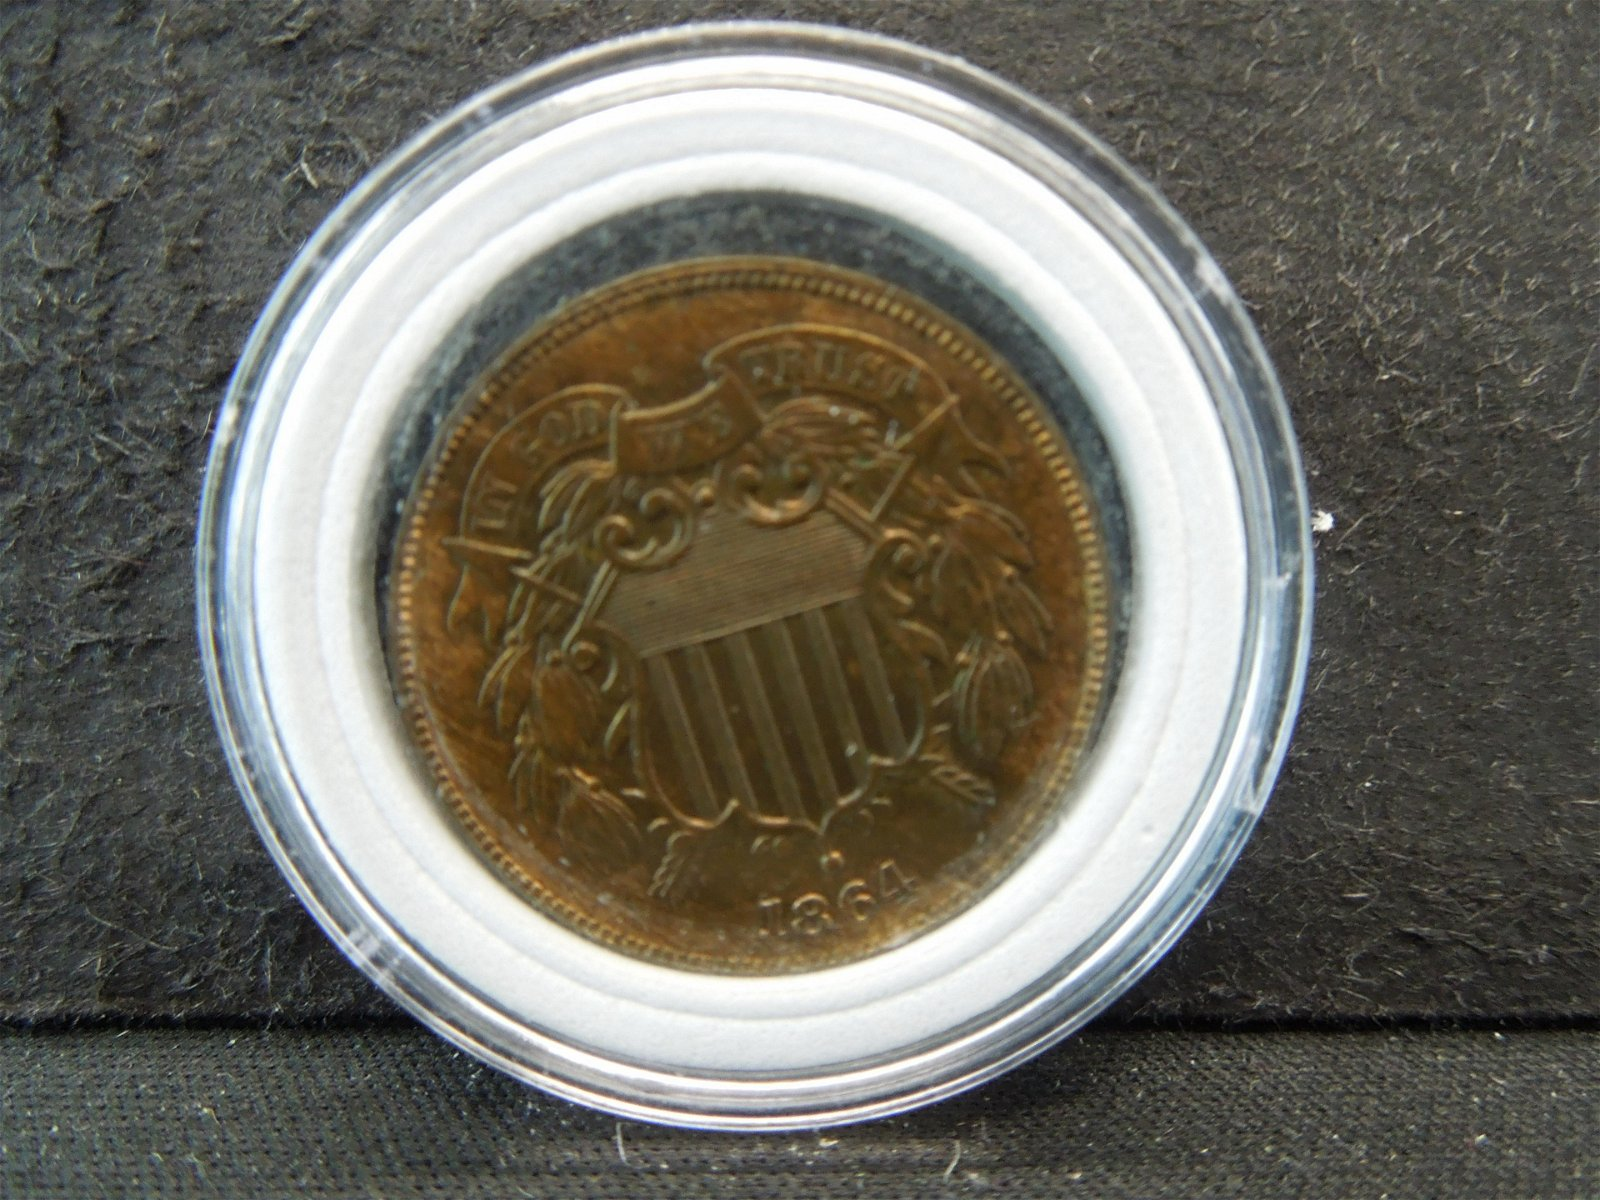 Unc 1864 Large Motto Two Cents